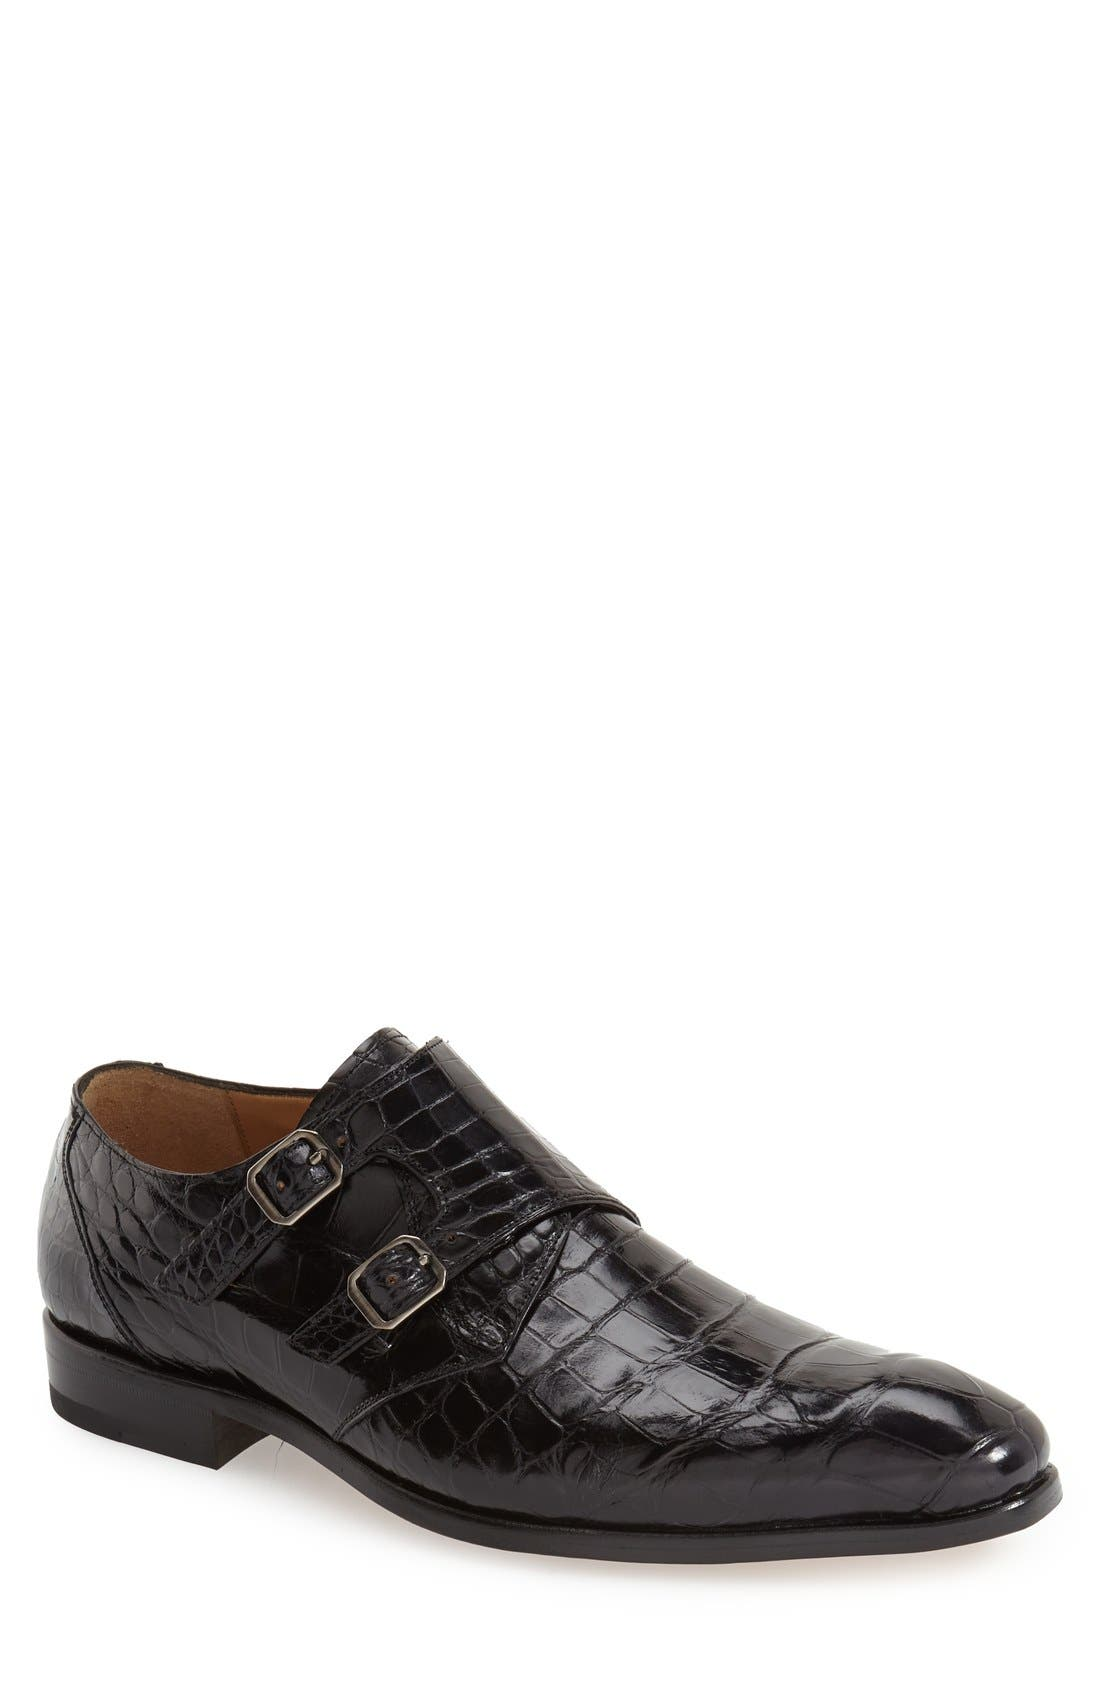 'Agra' Double Monk Strap Shoe,                             Main thumbnail 1, color,